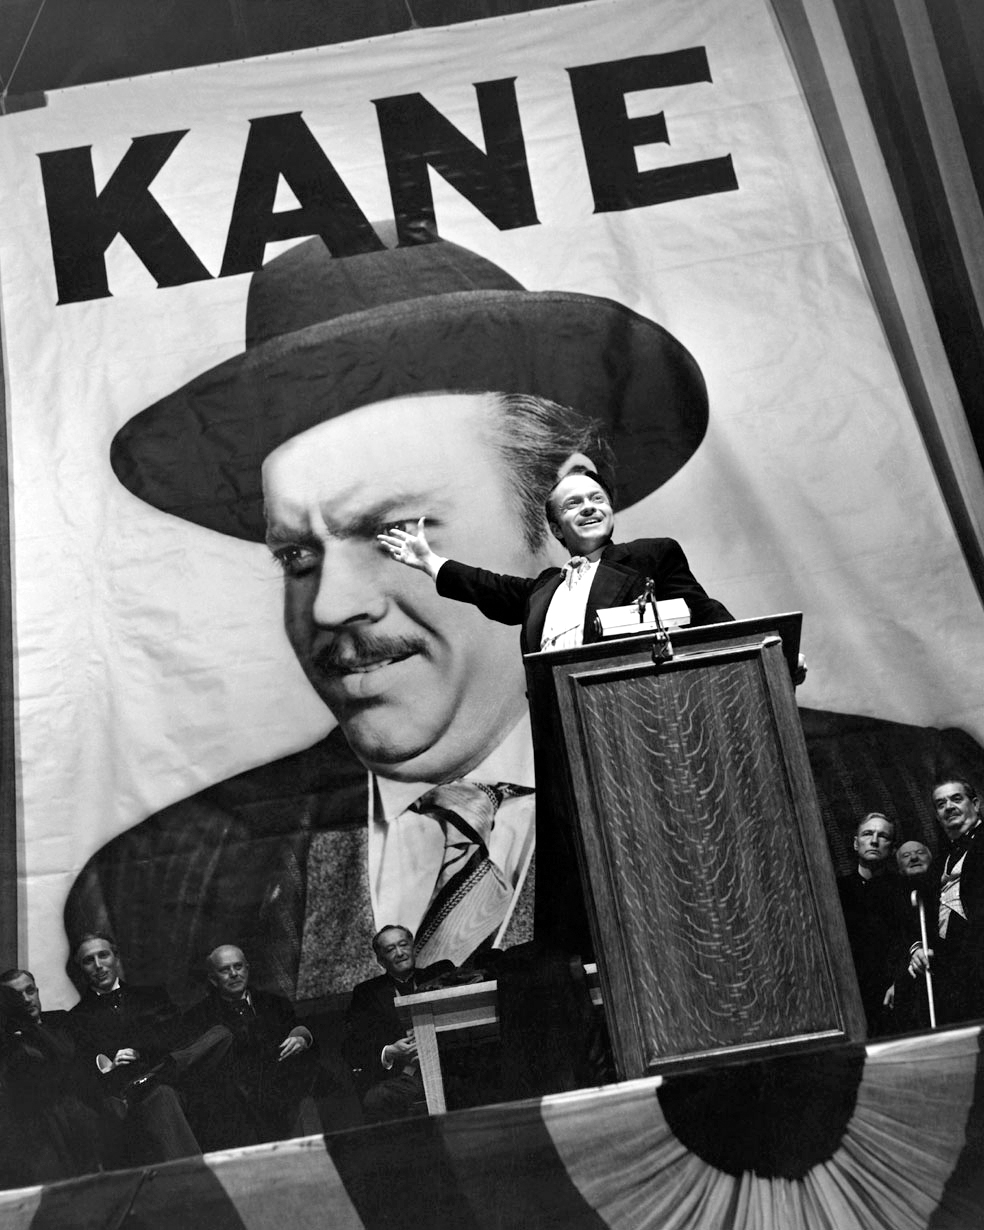 citizen kane 1941 christina wehner citizen kane welles podium